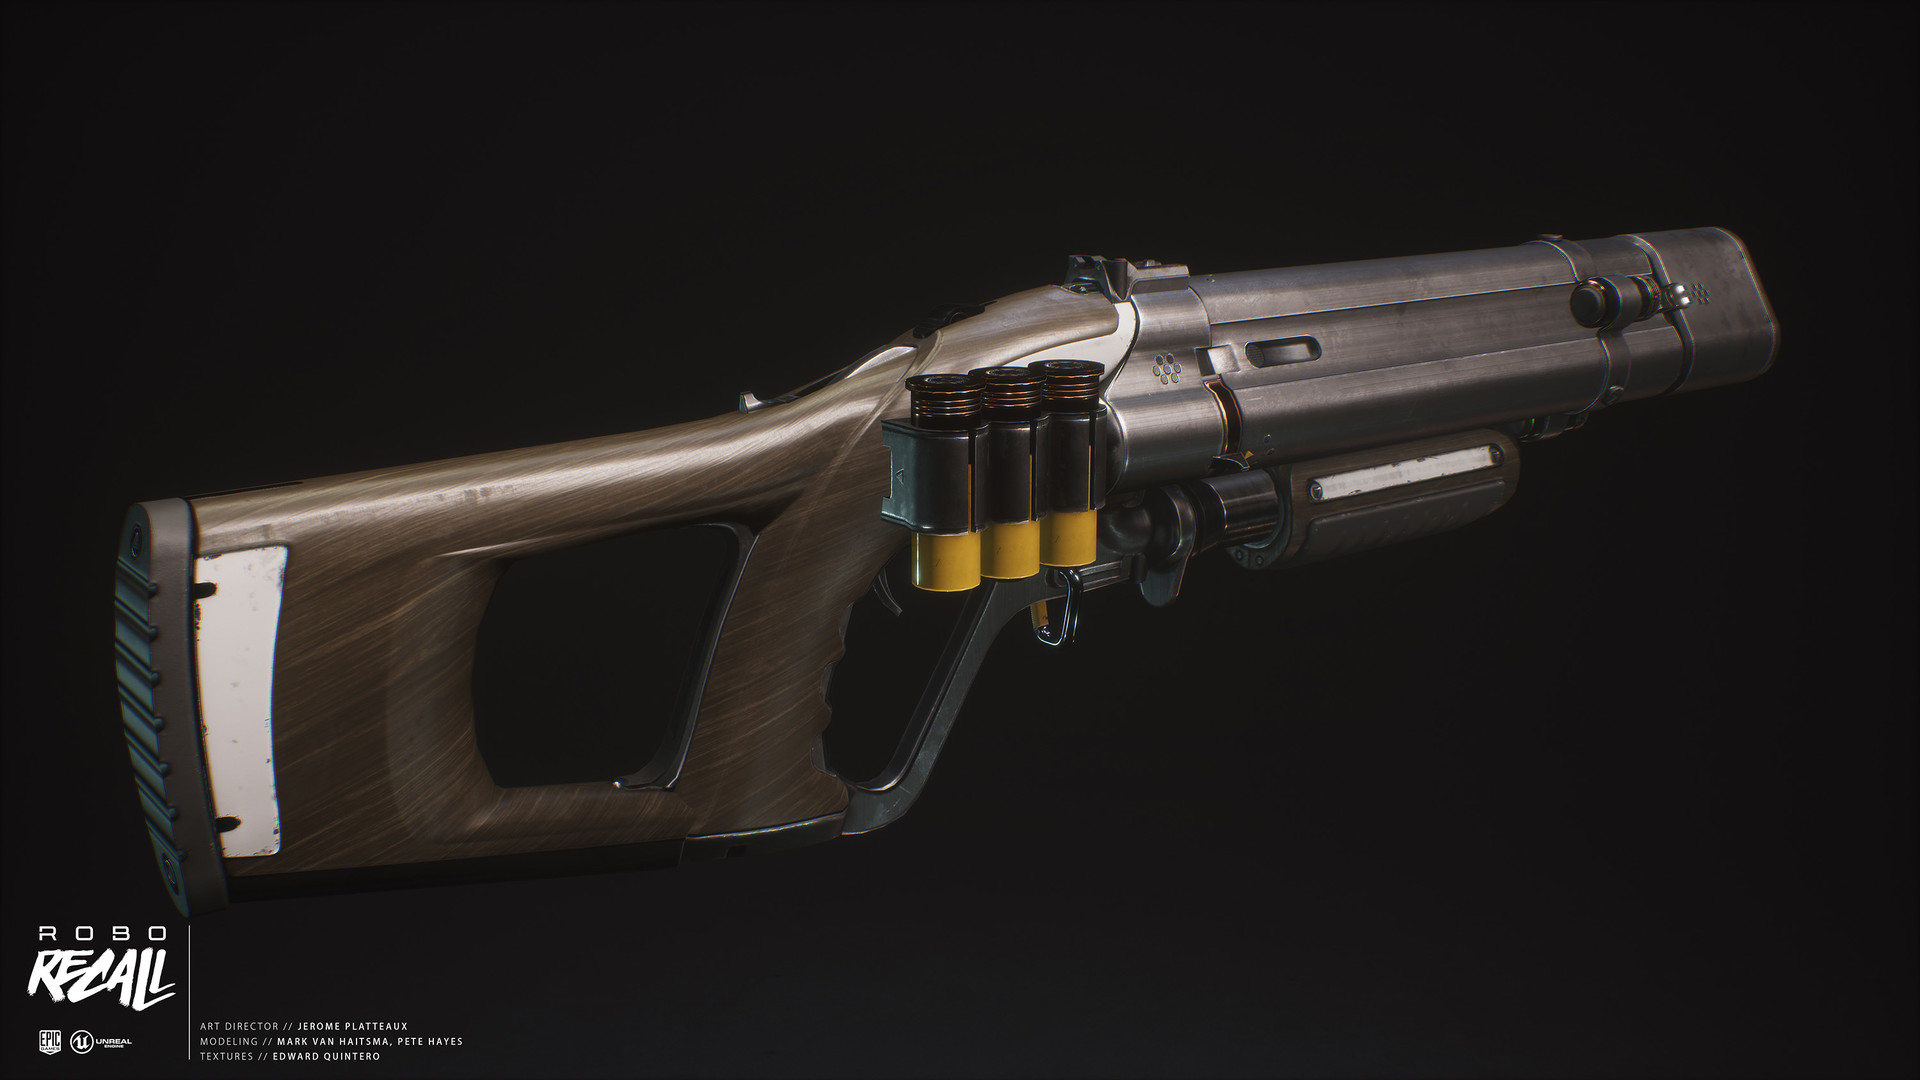 Mark van haitsma shotgun 02